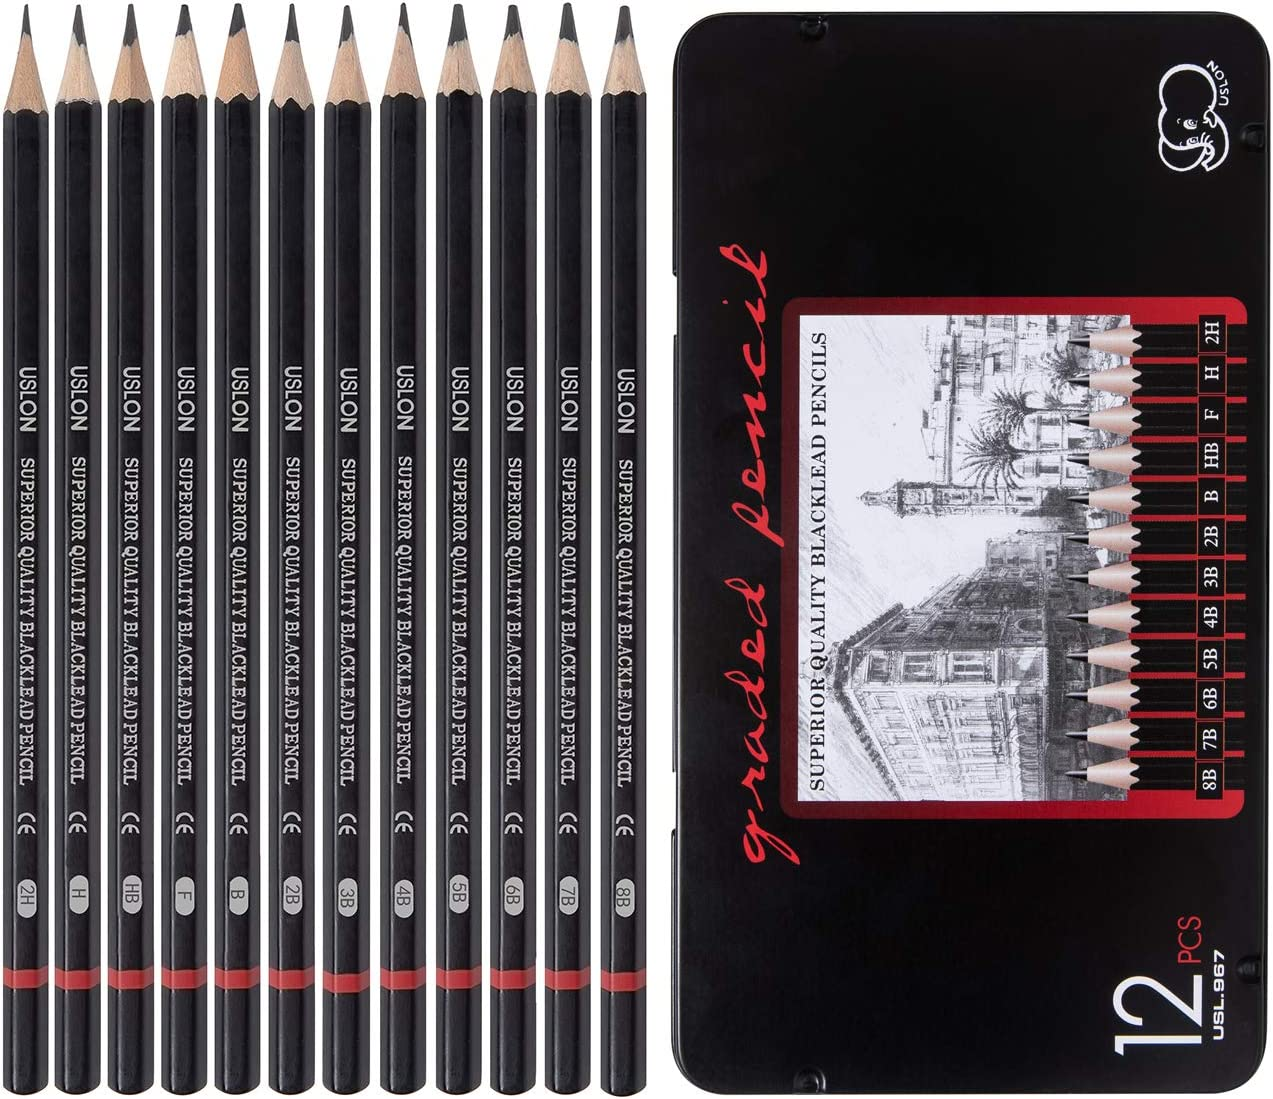 Professional Drawing Sketch Pencils Set of 12, Medium (8B - 2H), Ideal for Drawing Art, Sketching, Shading, Artist Pencils for Beginners & Pro Artists : Office Products